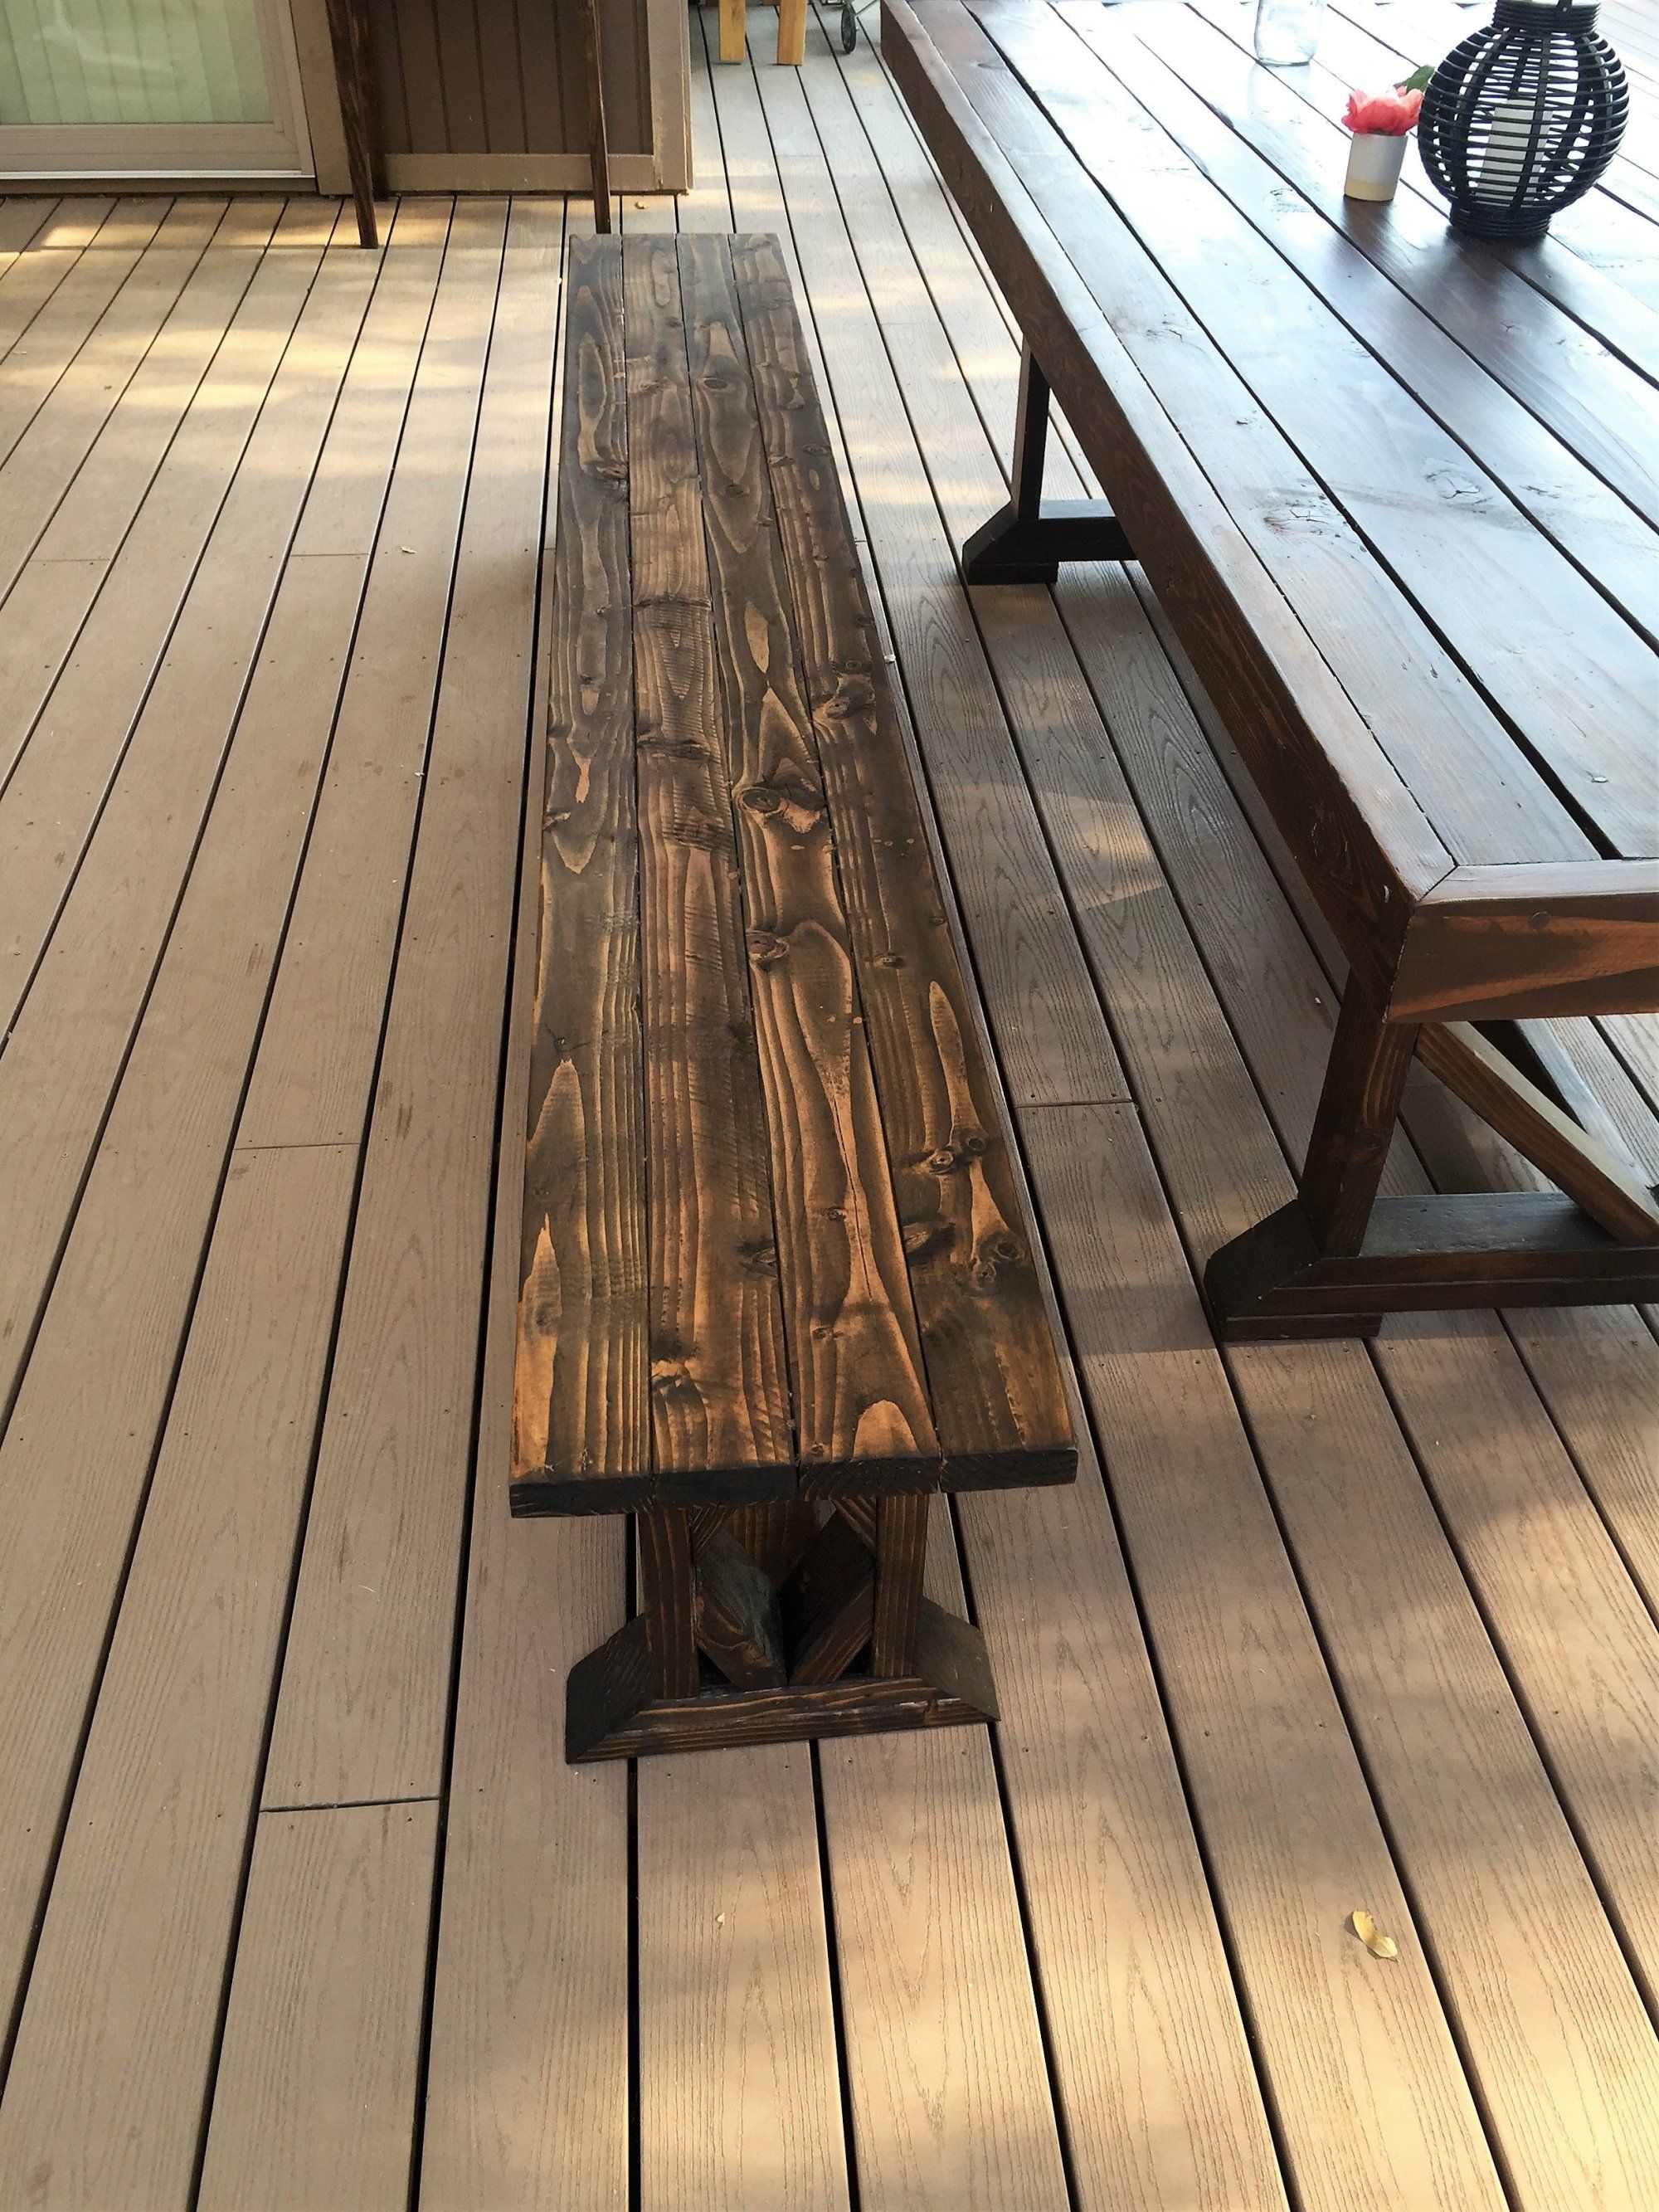 Marvelous Diy Extra Long Wood Bench Free Plans Diy Picnic Table Squirreltailoven Fun Painted Chair Ideas Images Squirreltailovenorg